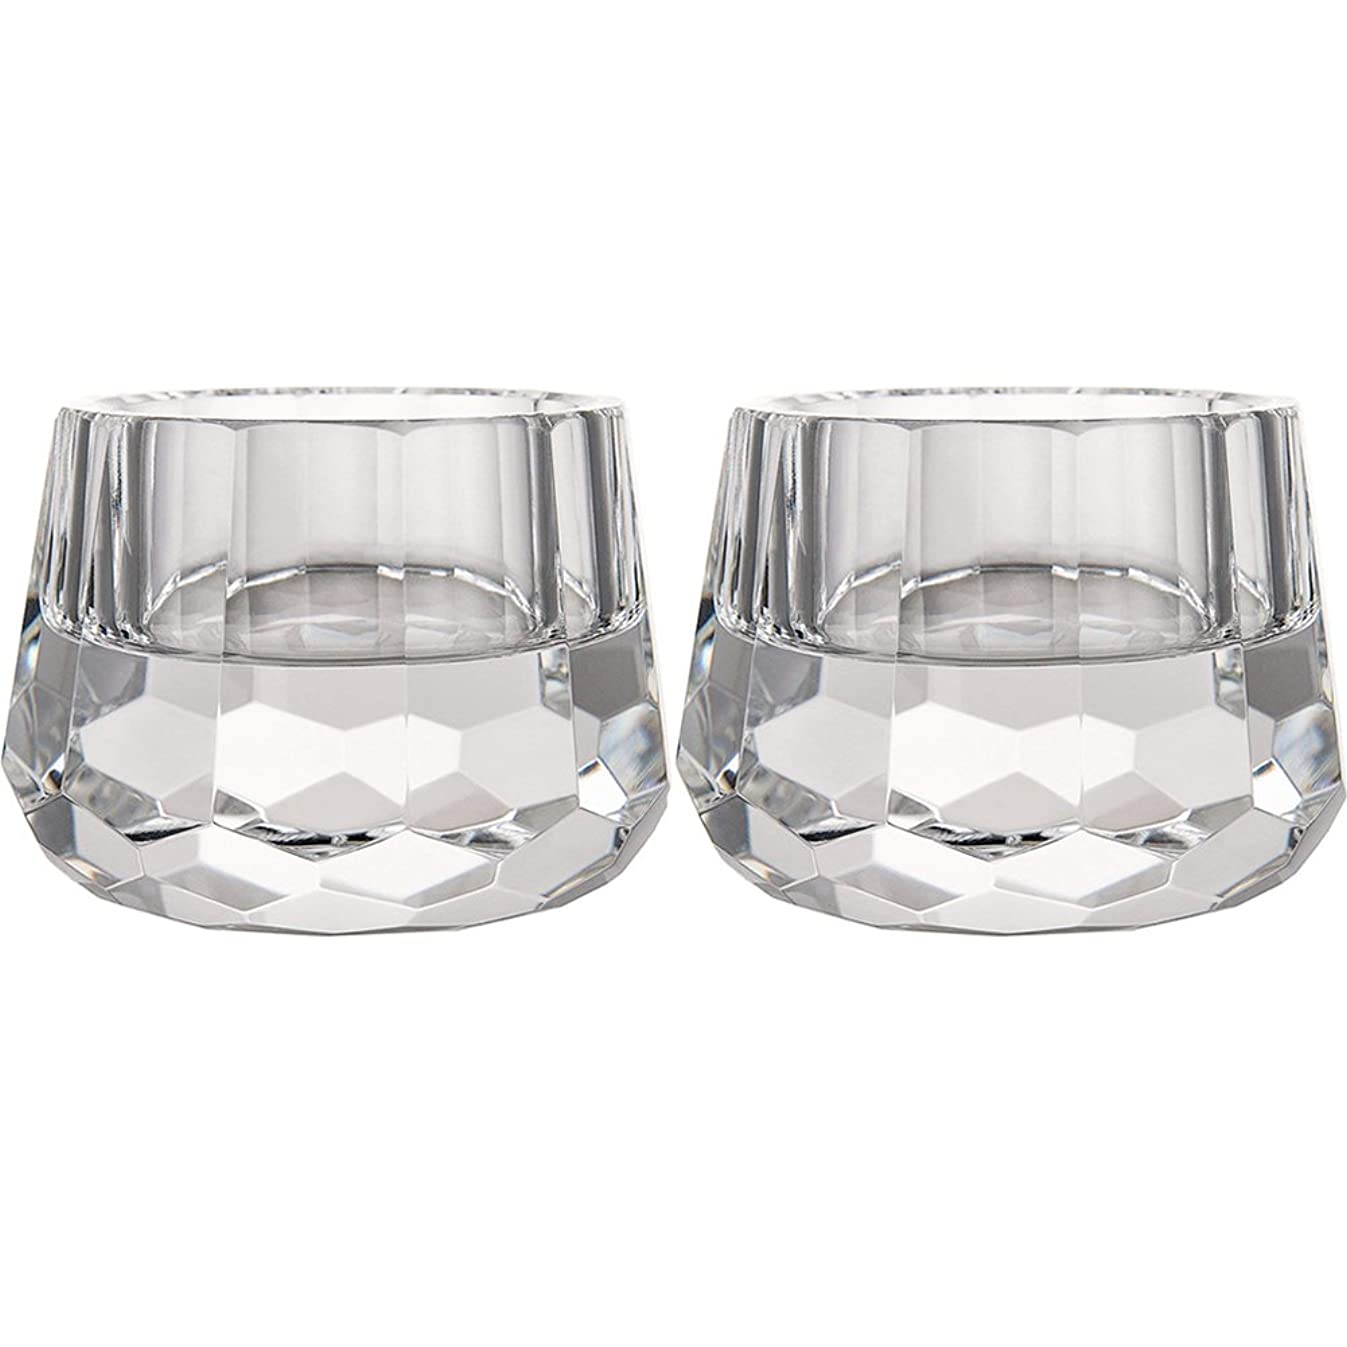 DONOUCLS Crystal Votive Tealight Holders Christmas Decorations for Home 2.5